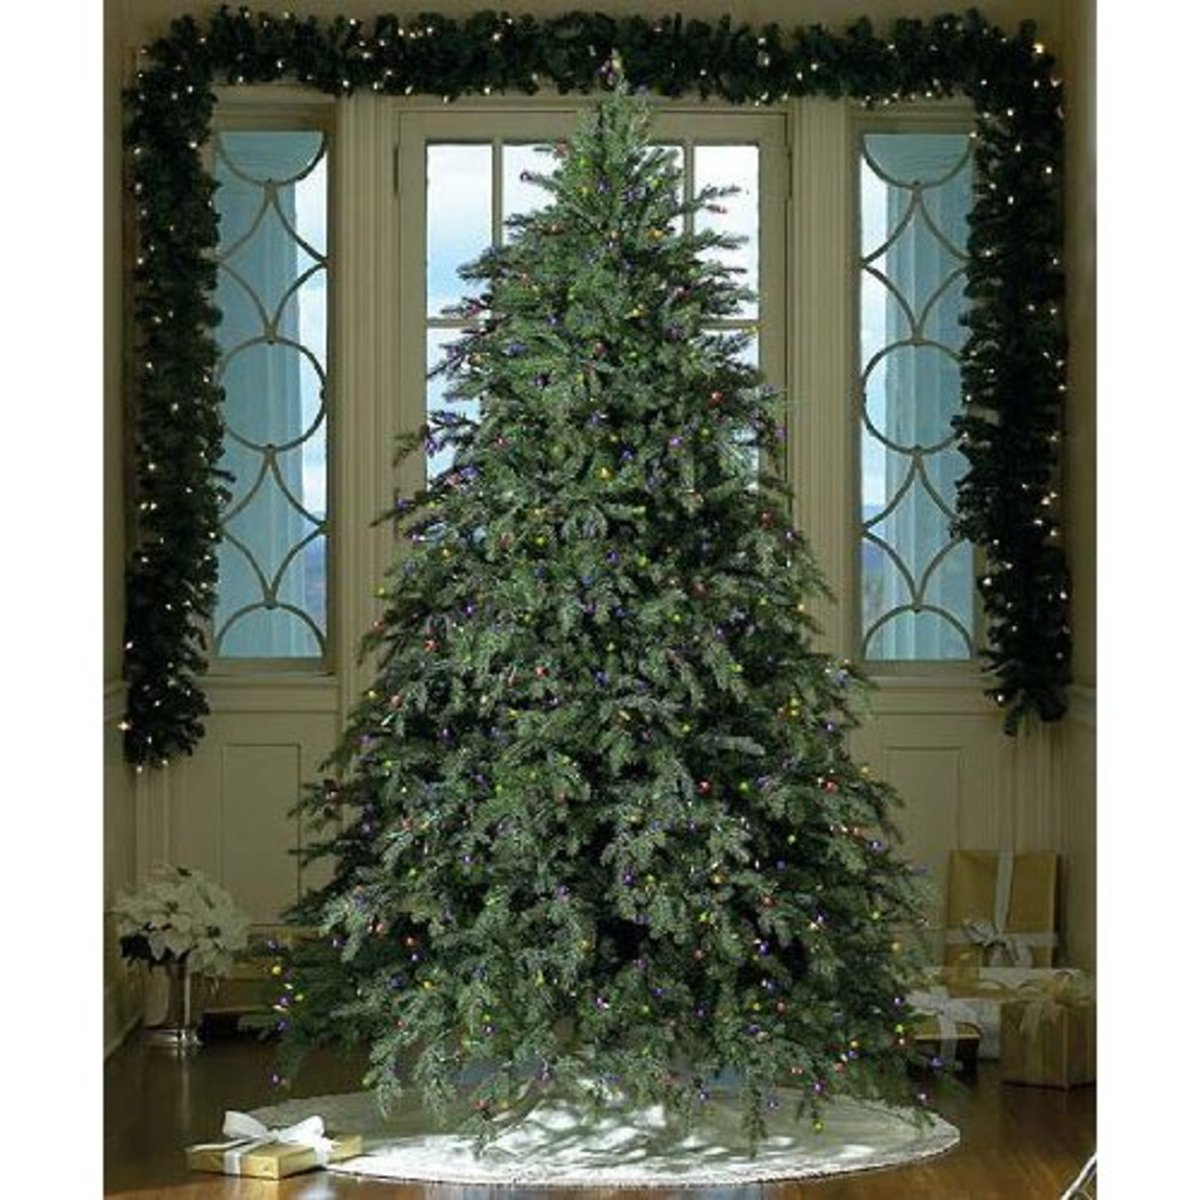 Buy a Beautiful Pre Lit Christmas Tree at a Discount!